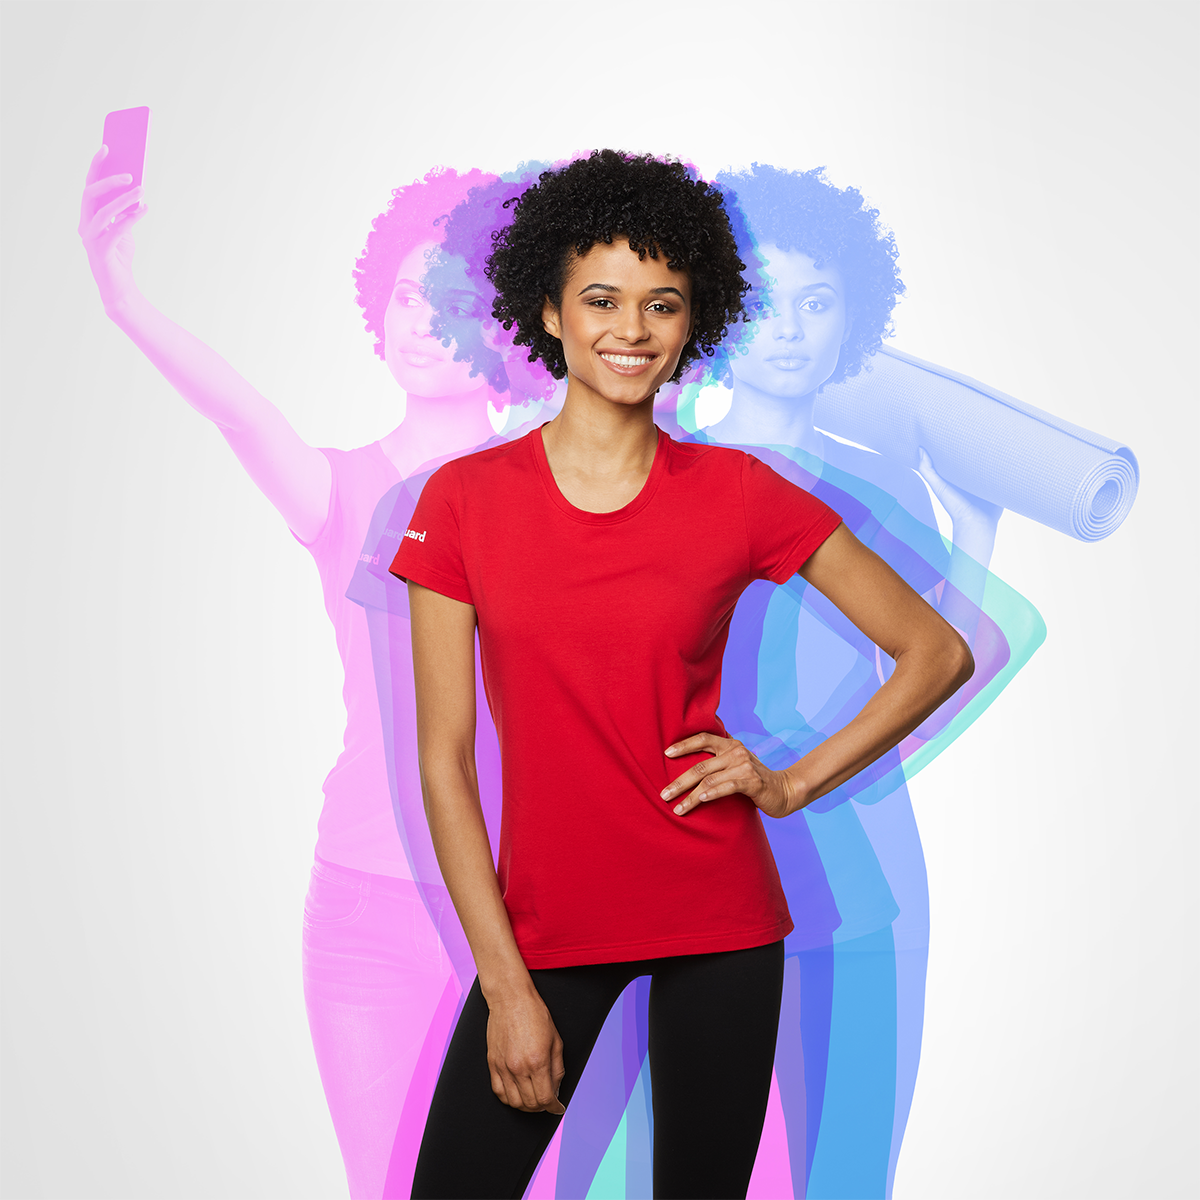 woman wearing a red livinguard t-shirt. Shadows of her in the background symbolize daily activities like making a selfie and carrying an yoga mat